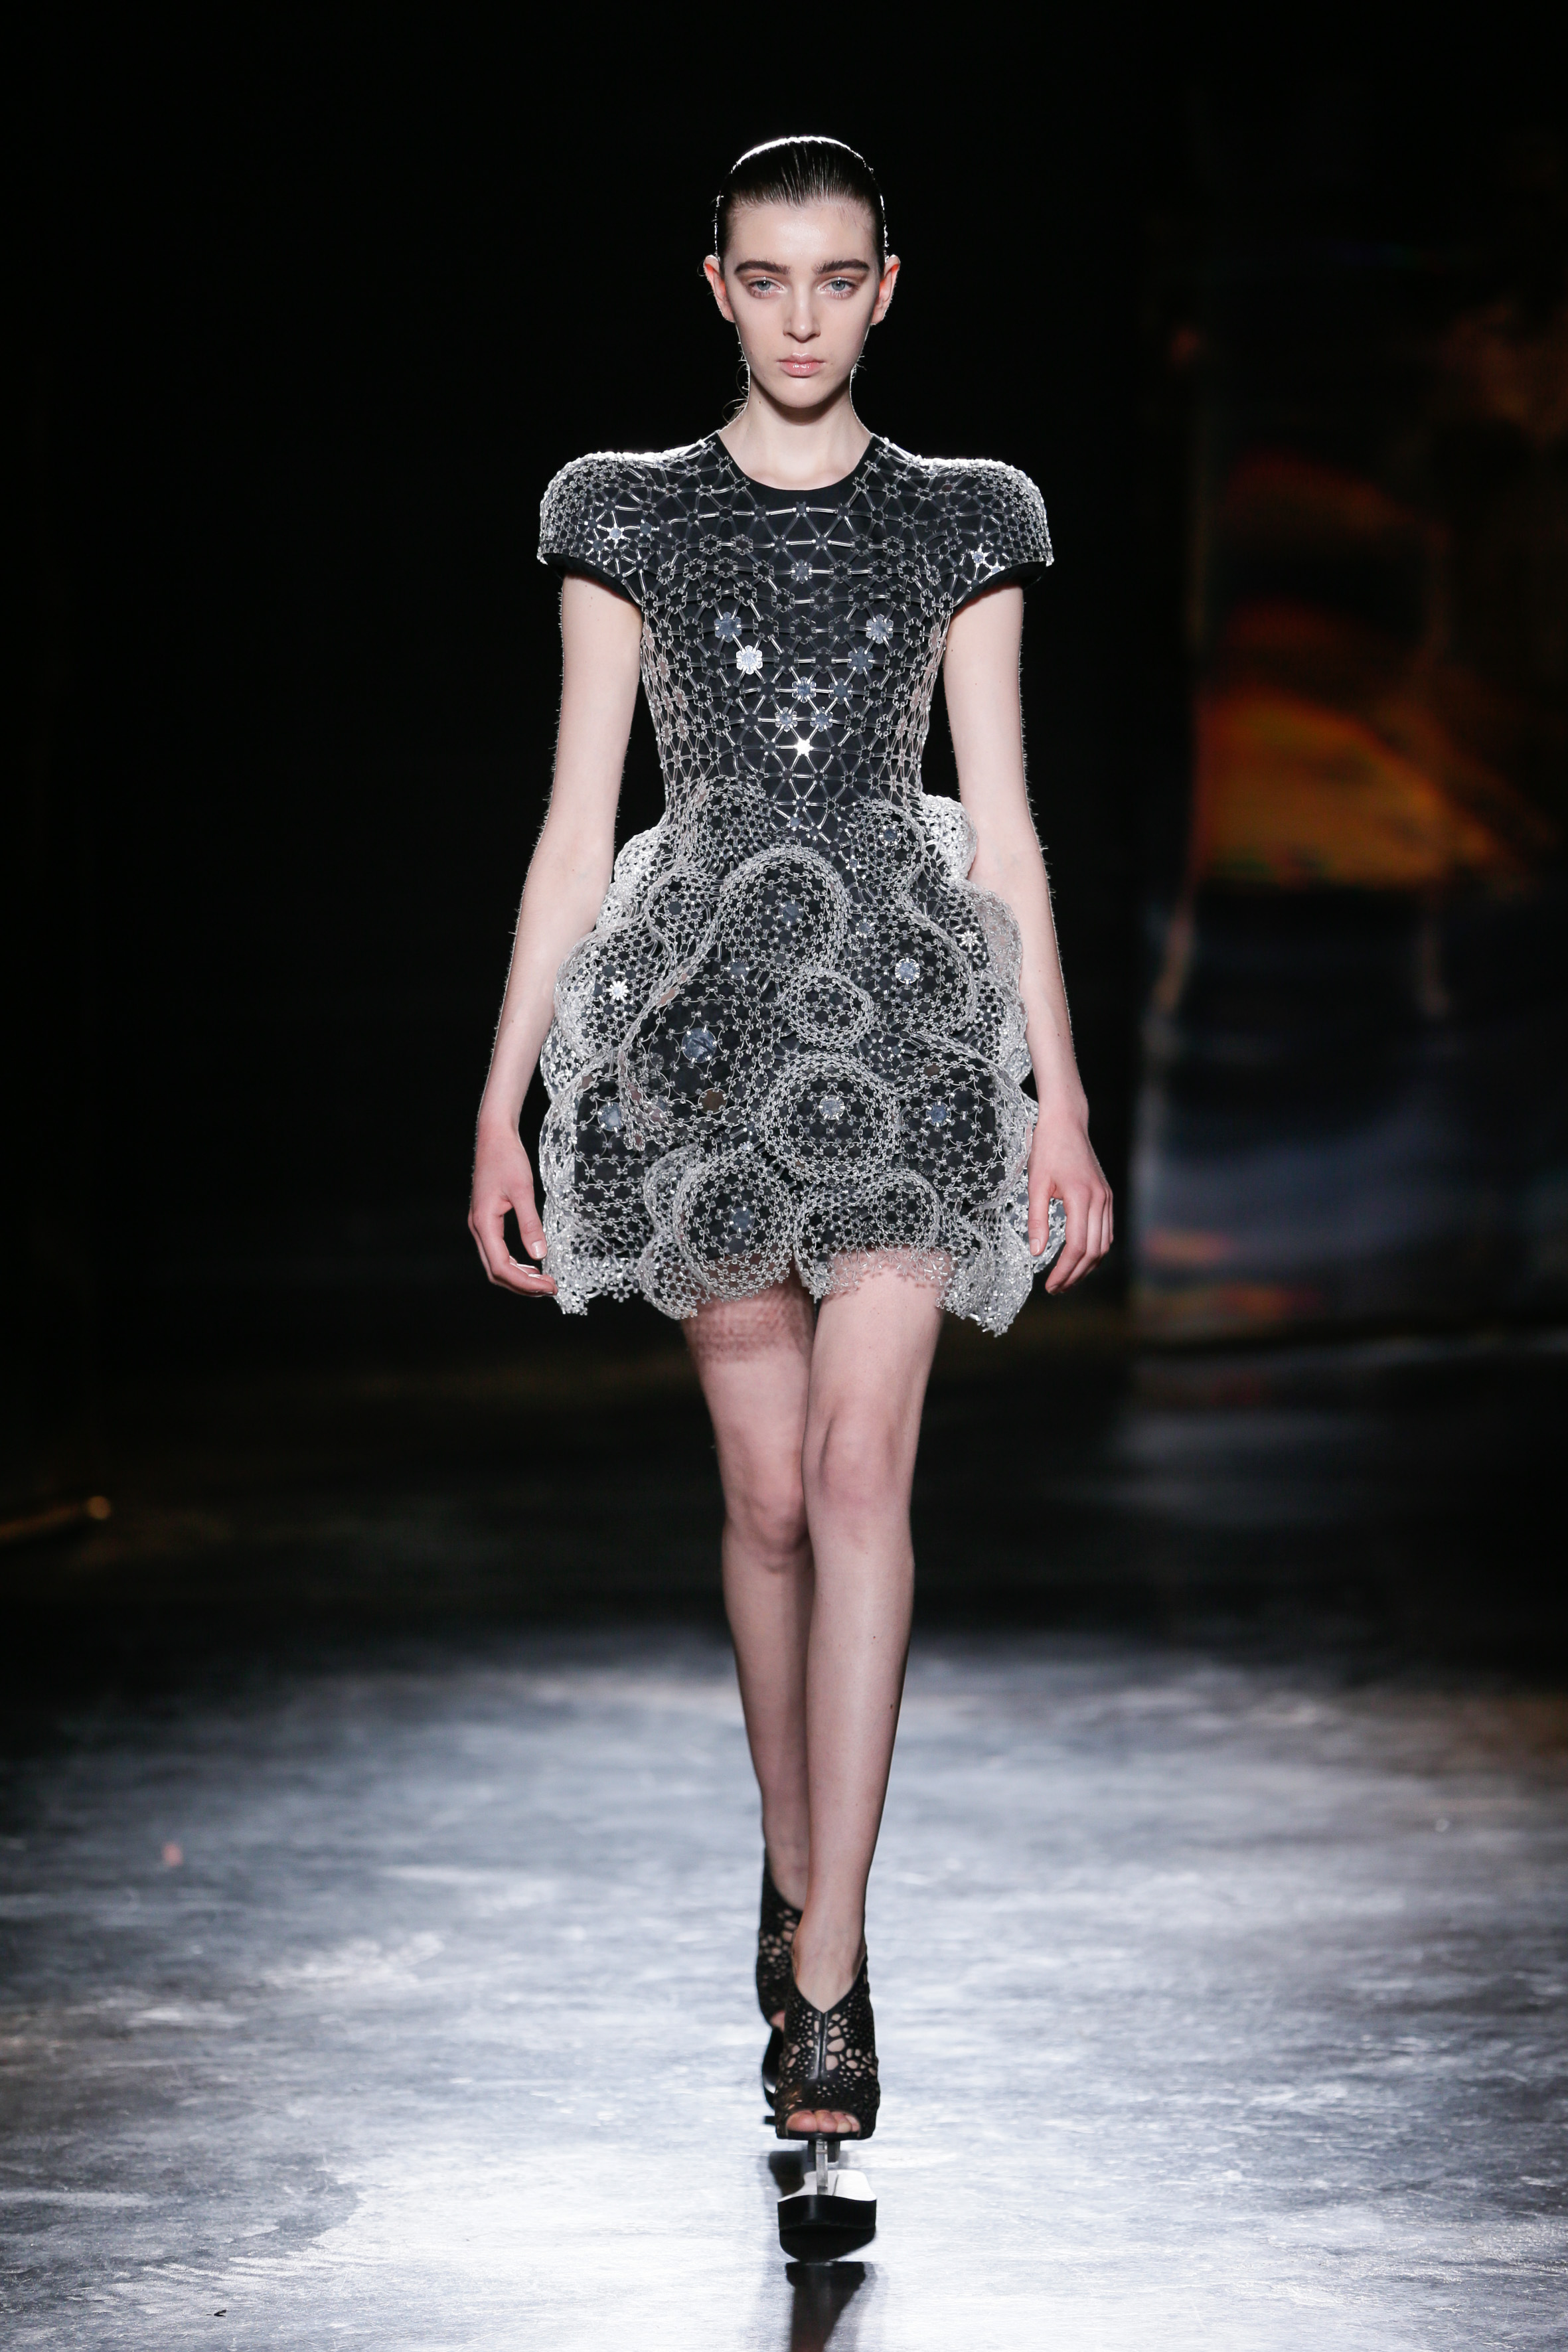 Iris Van Herpen Catwalk Fashion Show Womenswear FW2016